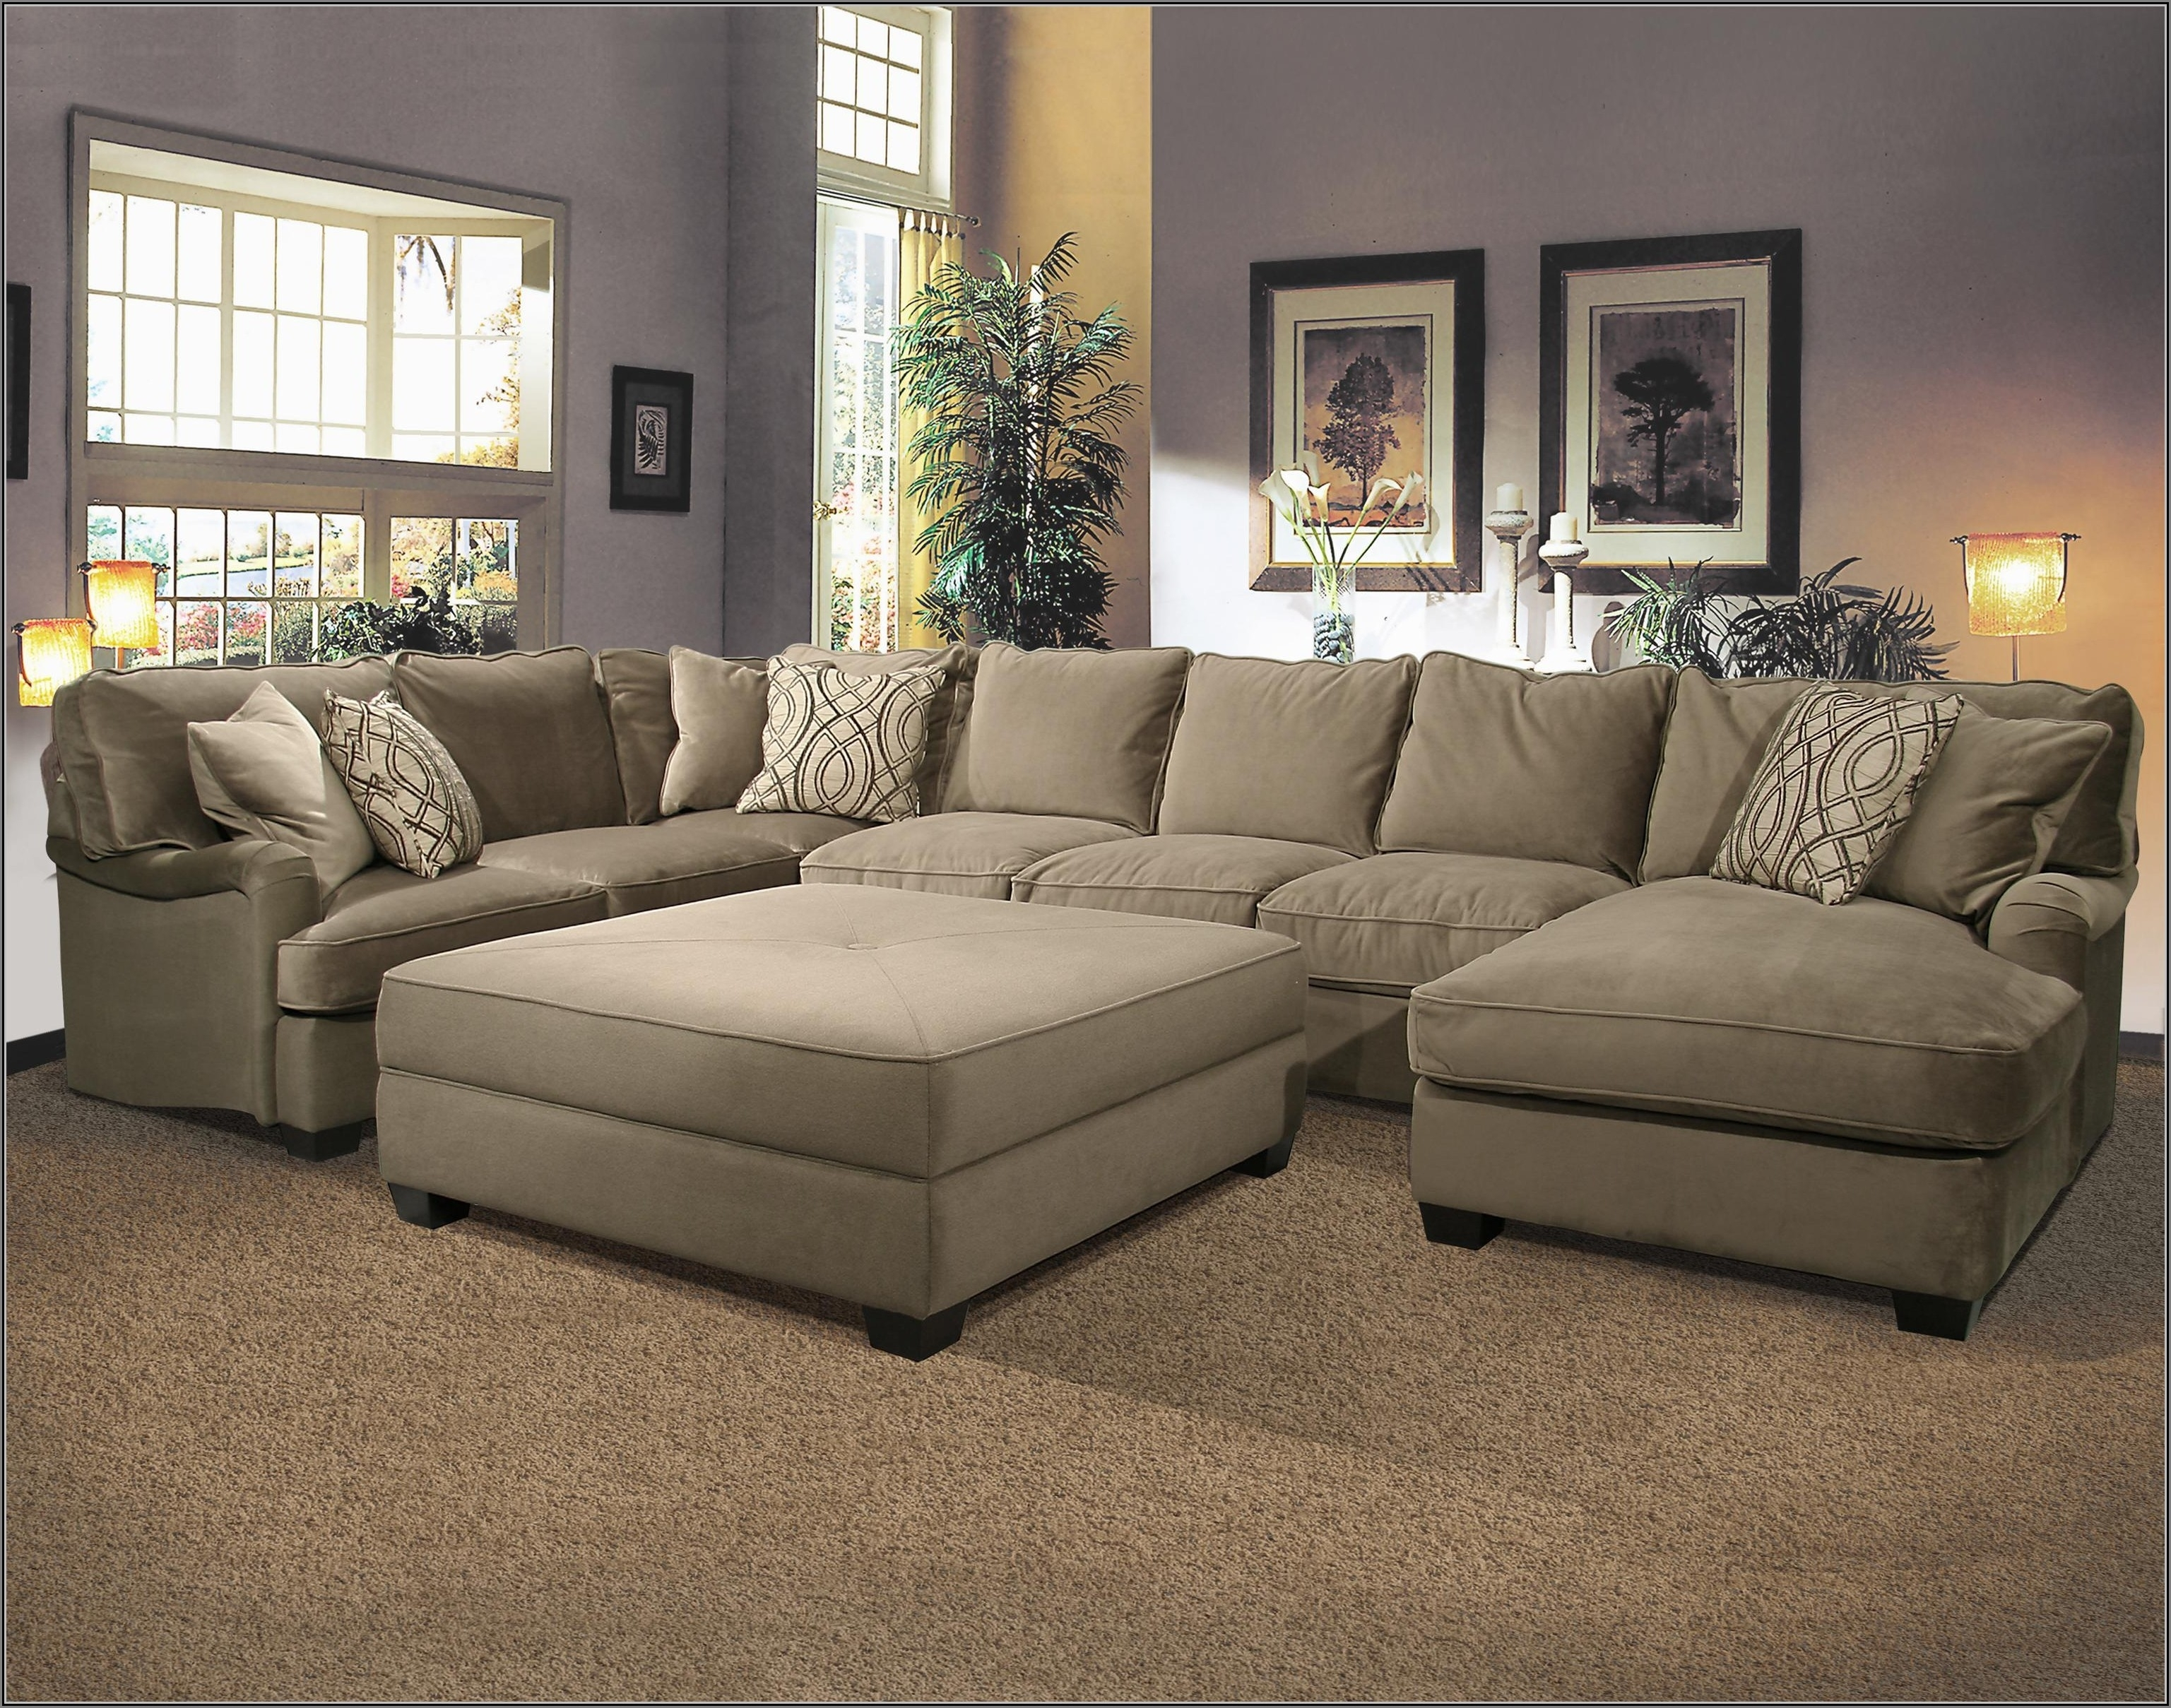 Sofa Extra Large Sectional With Chaise And Ottoman U Shaped Bedroom With Regard To Huge U Shaped Sectionals (Image 10 of 10)